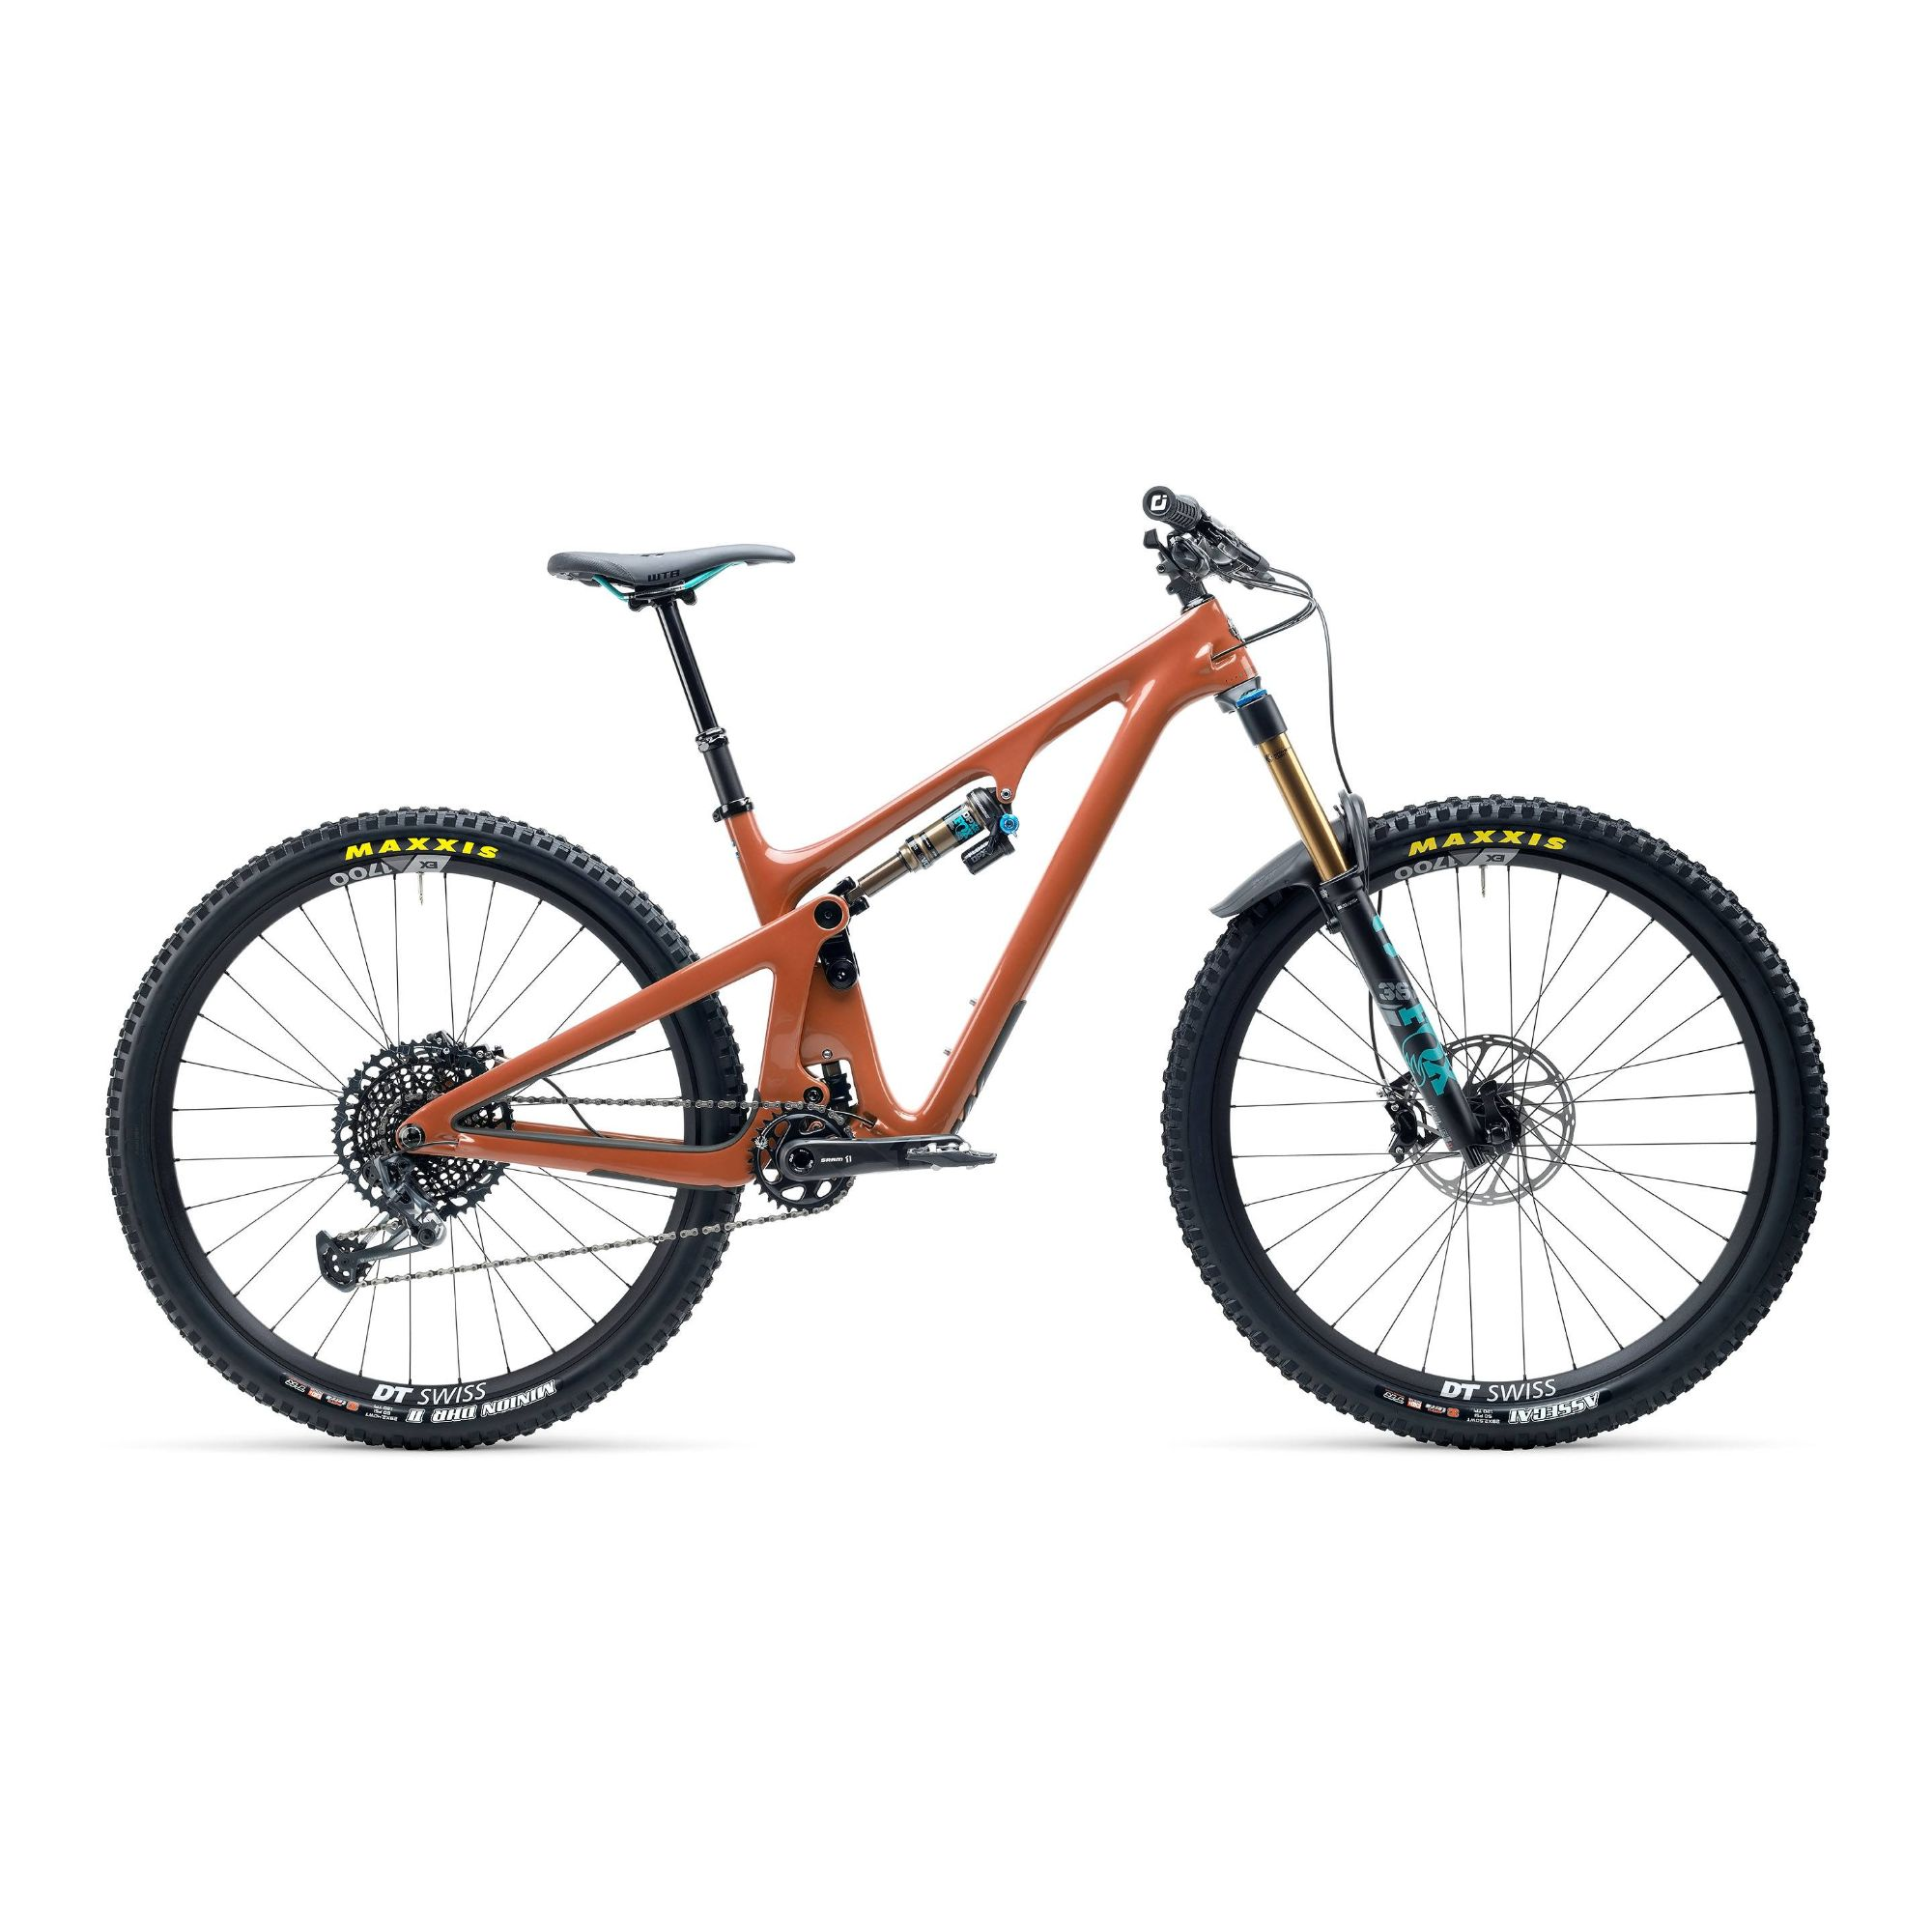 Yeti SB130 TSeries XO1 Lunchride 29er Carbon Mountain Bike 2021 Brick